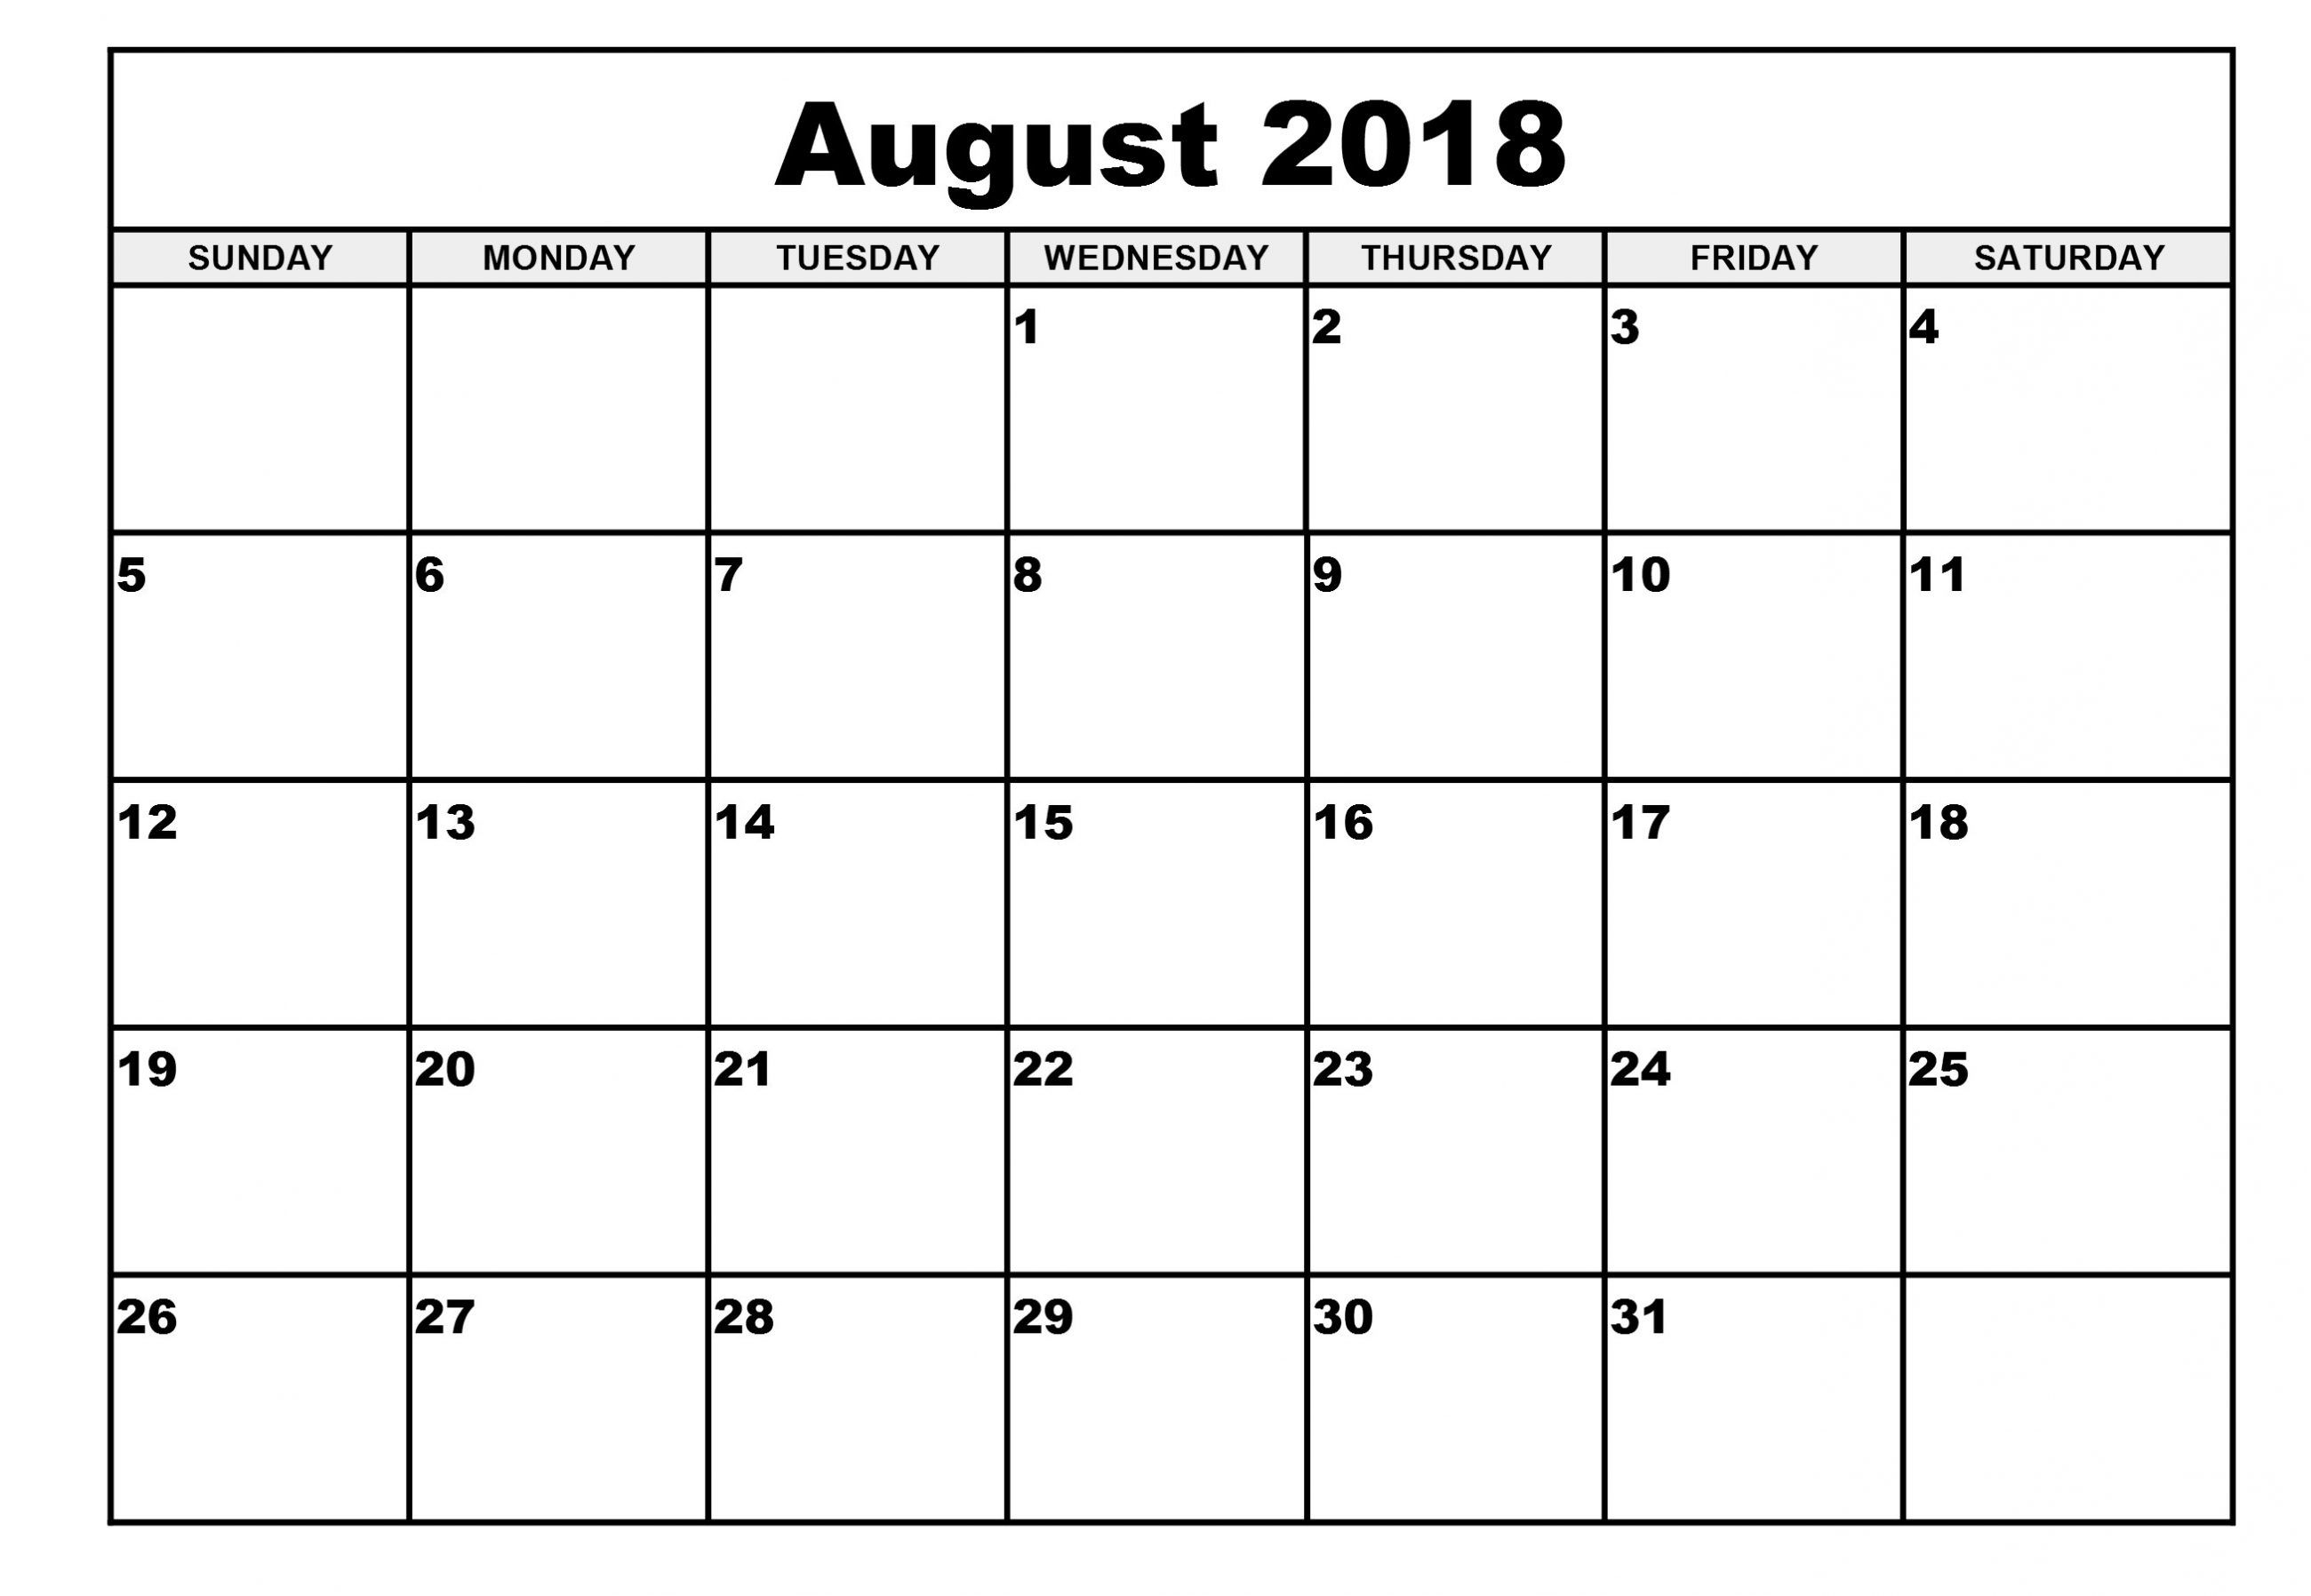 Monthly Calendar August Month 2018 | August 2018 Calendar | Monthly within August Blank Calendar Template